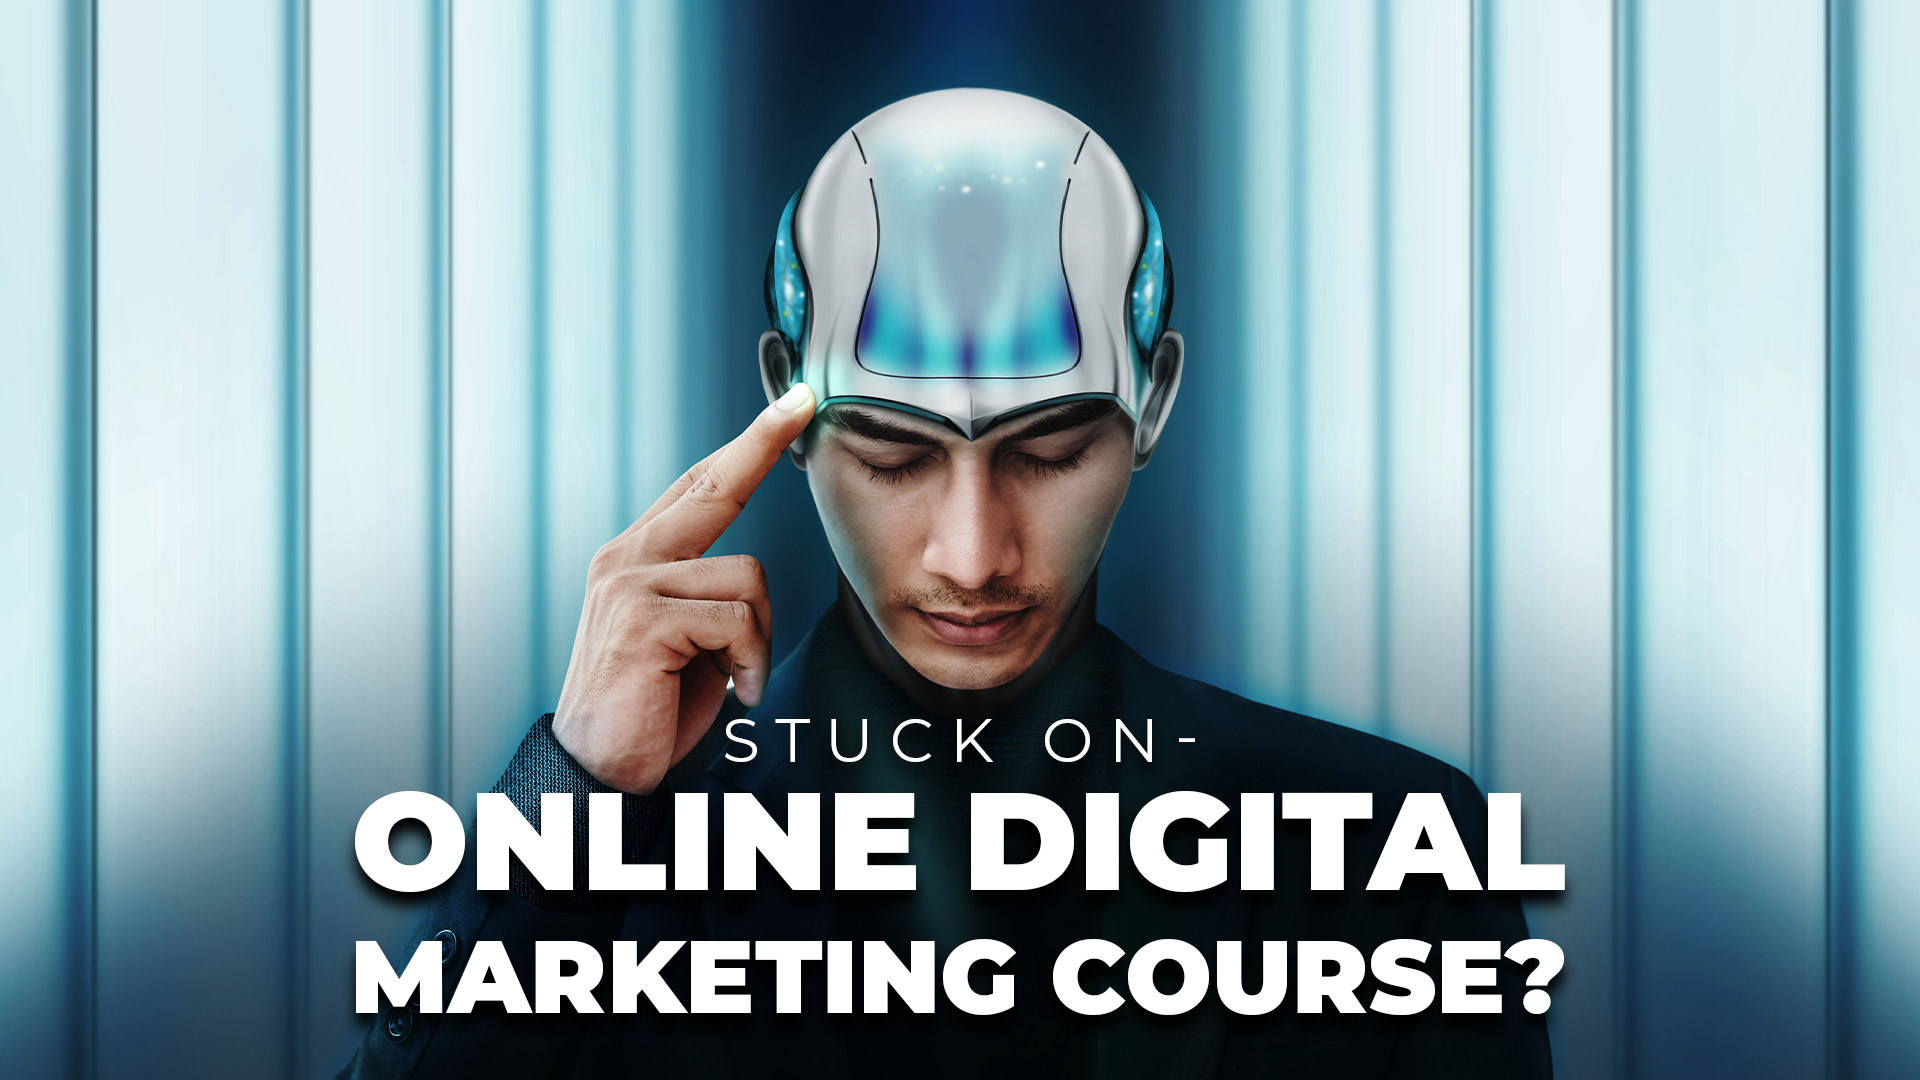 Stuck On - Online Digital Marketing Course? Discover the Perks of Having It